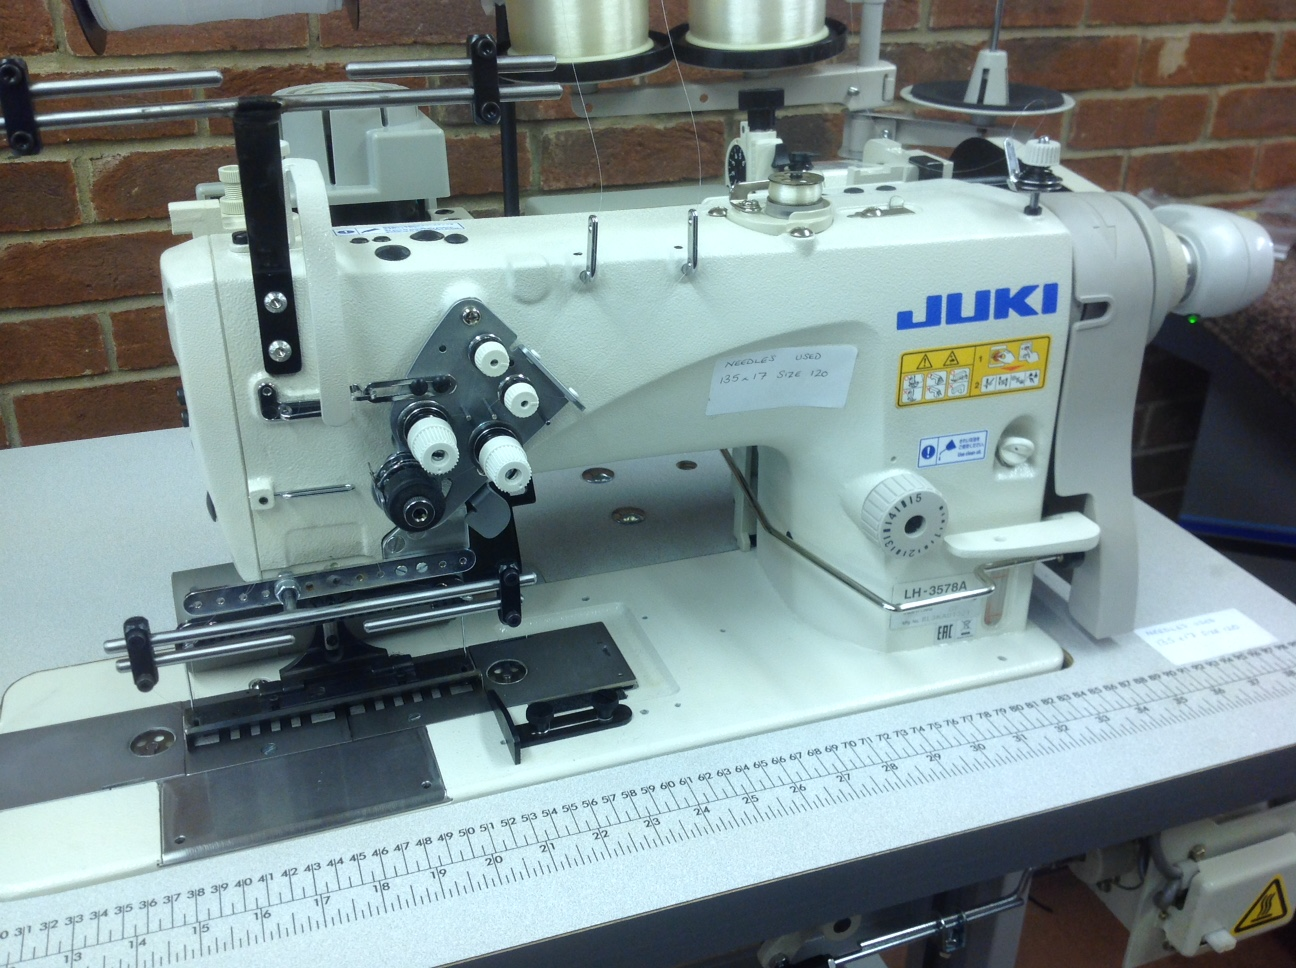 Juki LH-3578A 138mm gauge for attaching wide tape